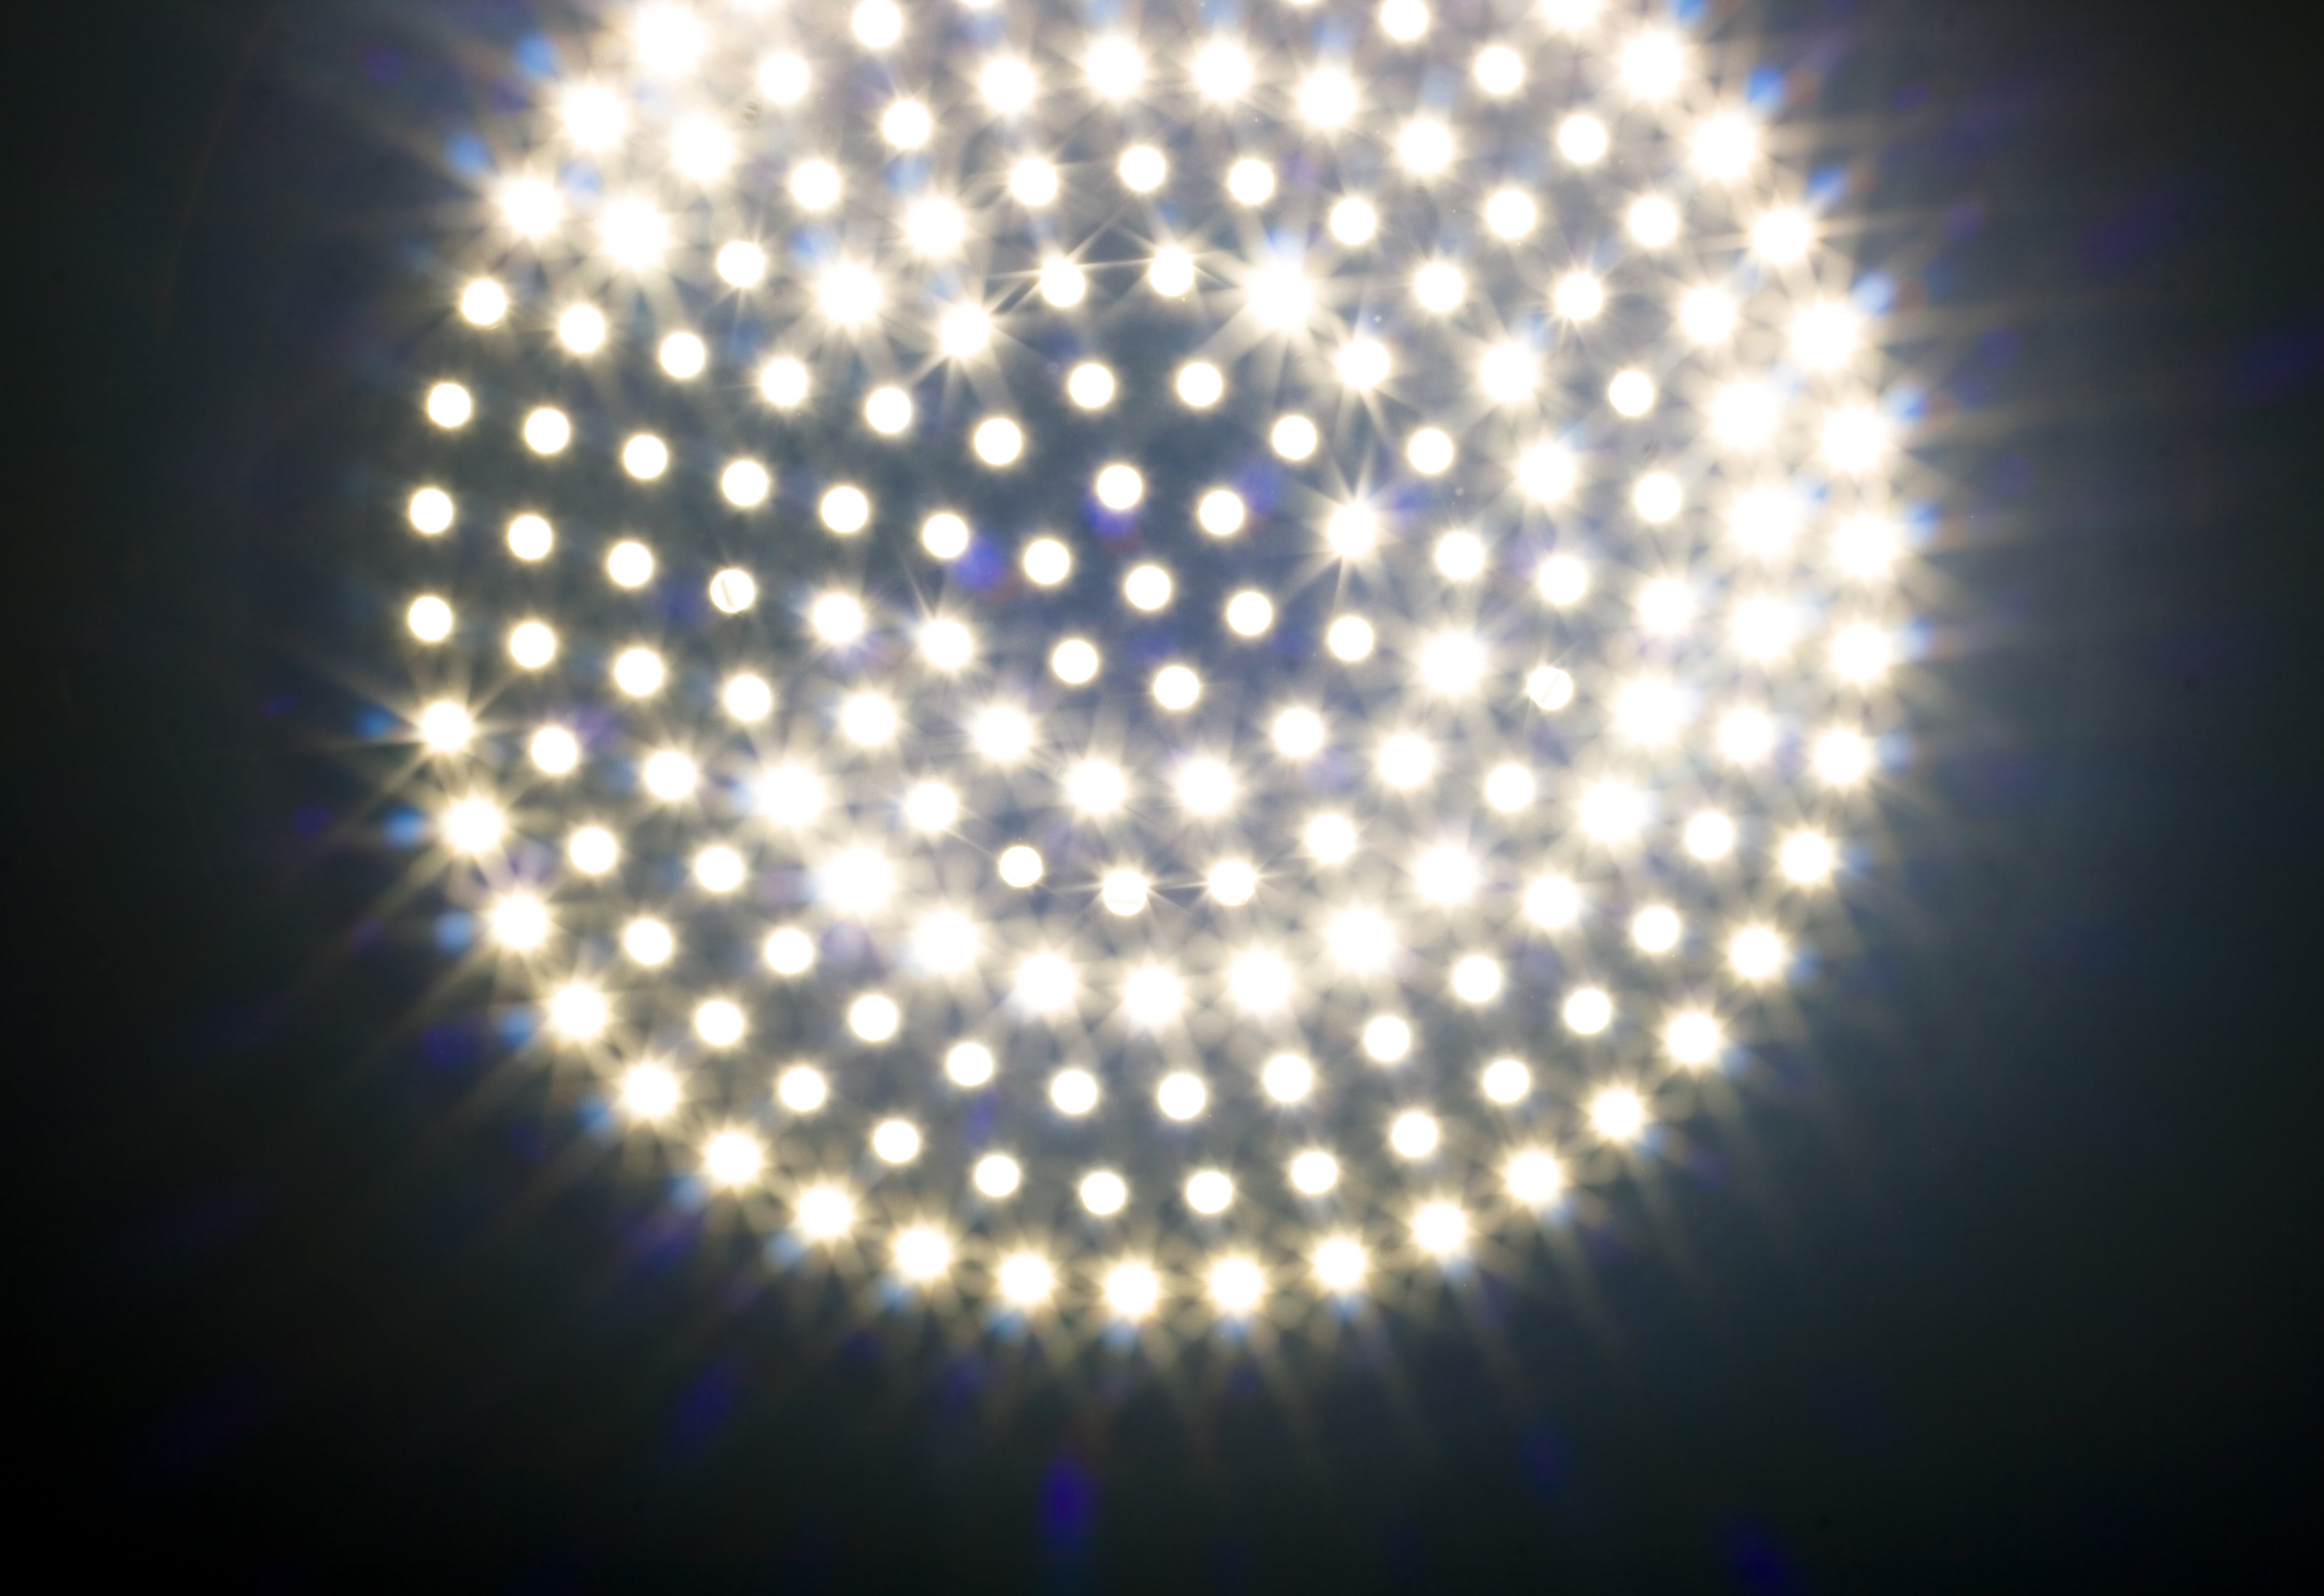 abstract background, Abstract, Light, Texture, Sunrays, HQ Photo